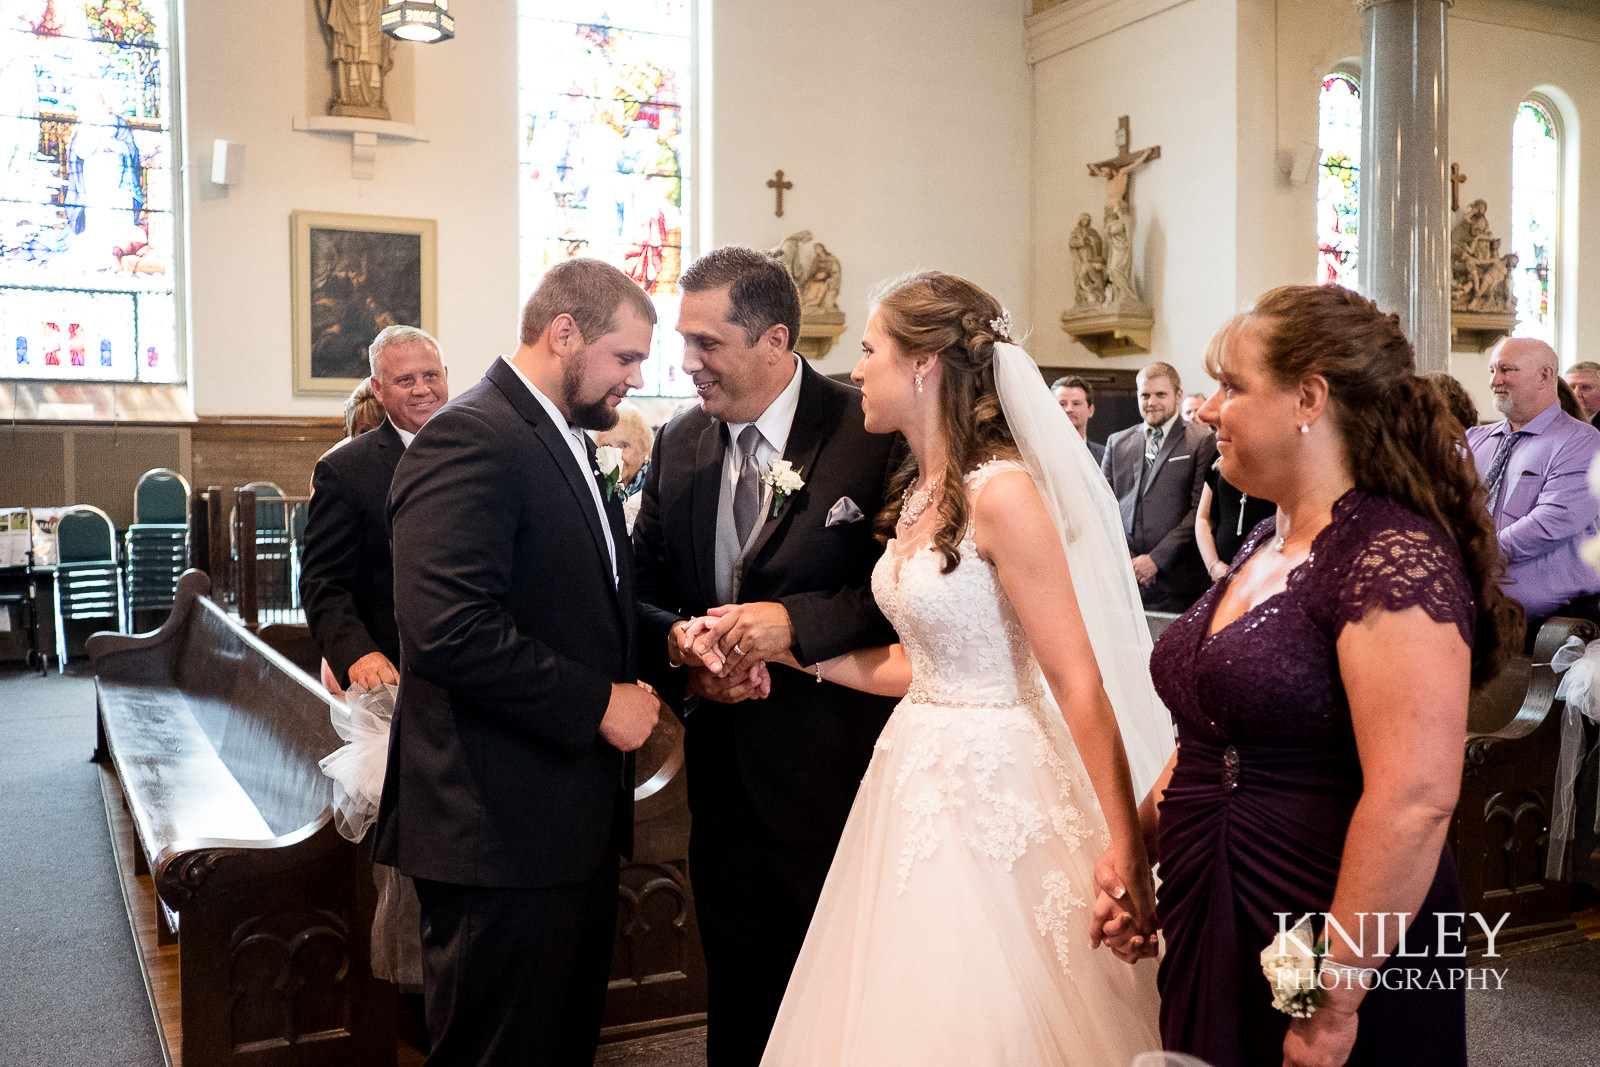 025 - Canandiagua NY wedding pictures - St Marys church ceremony - XT2A2025.jpg